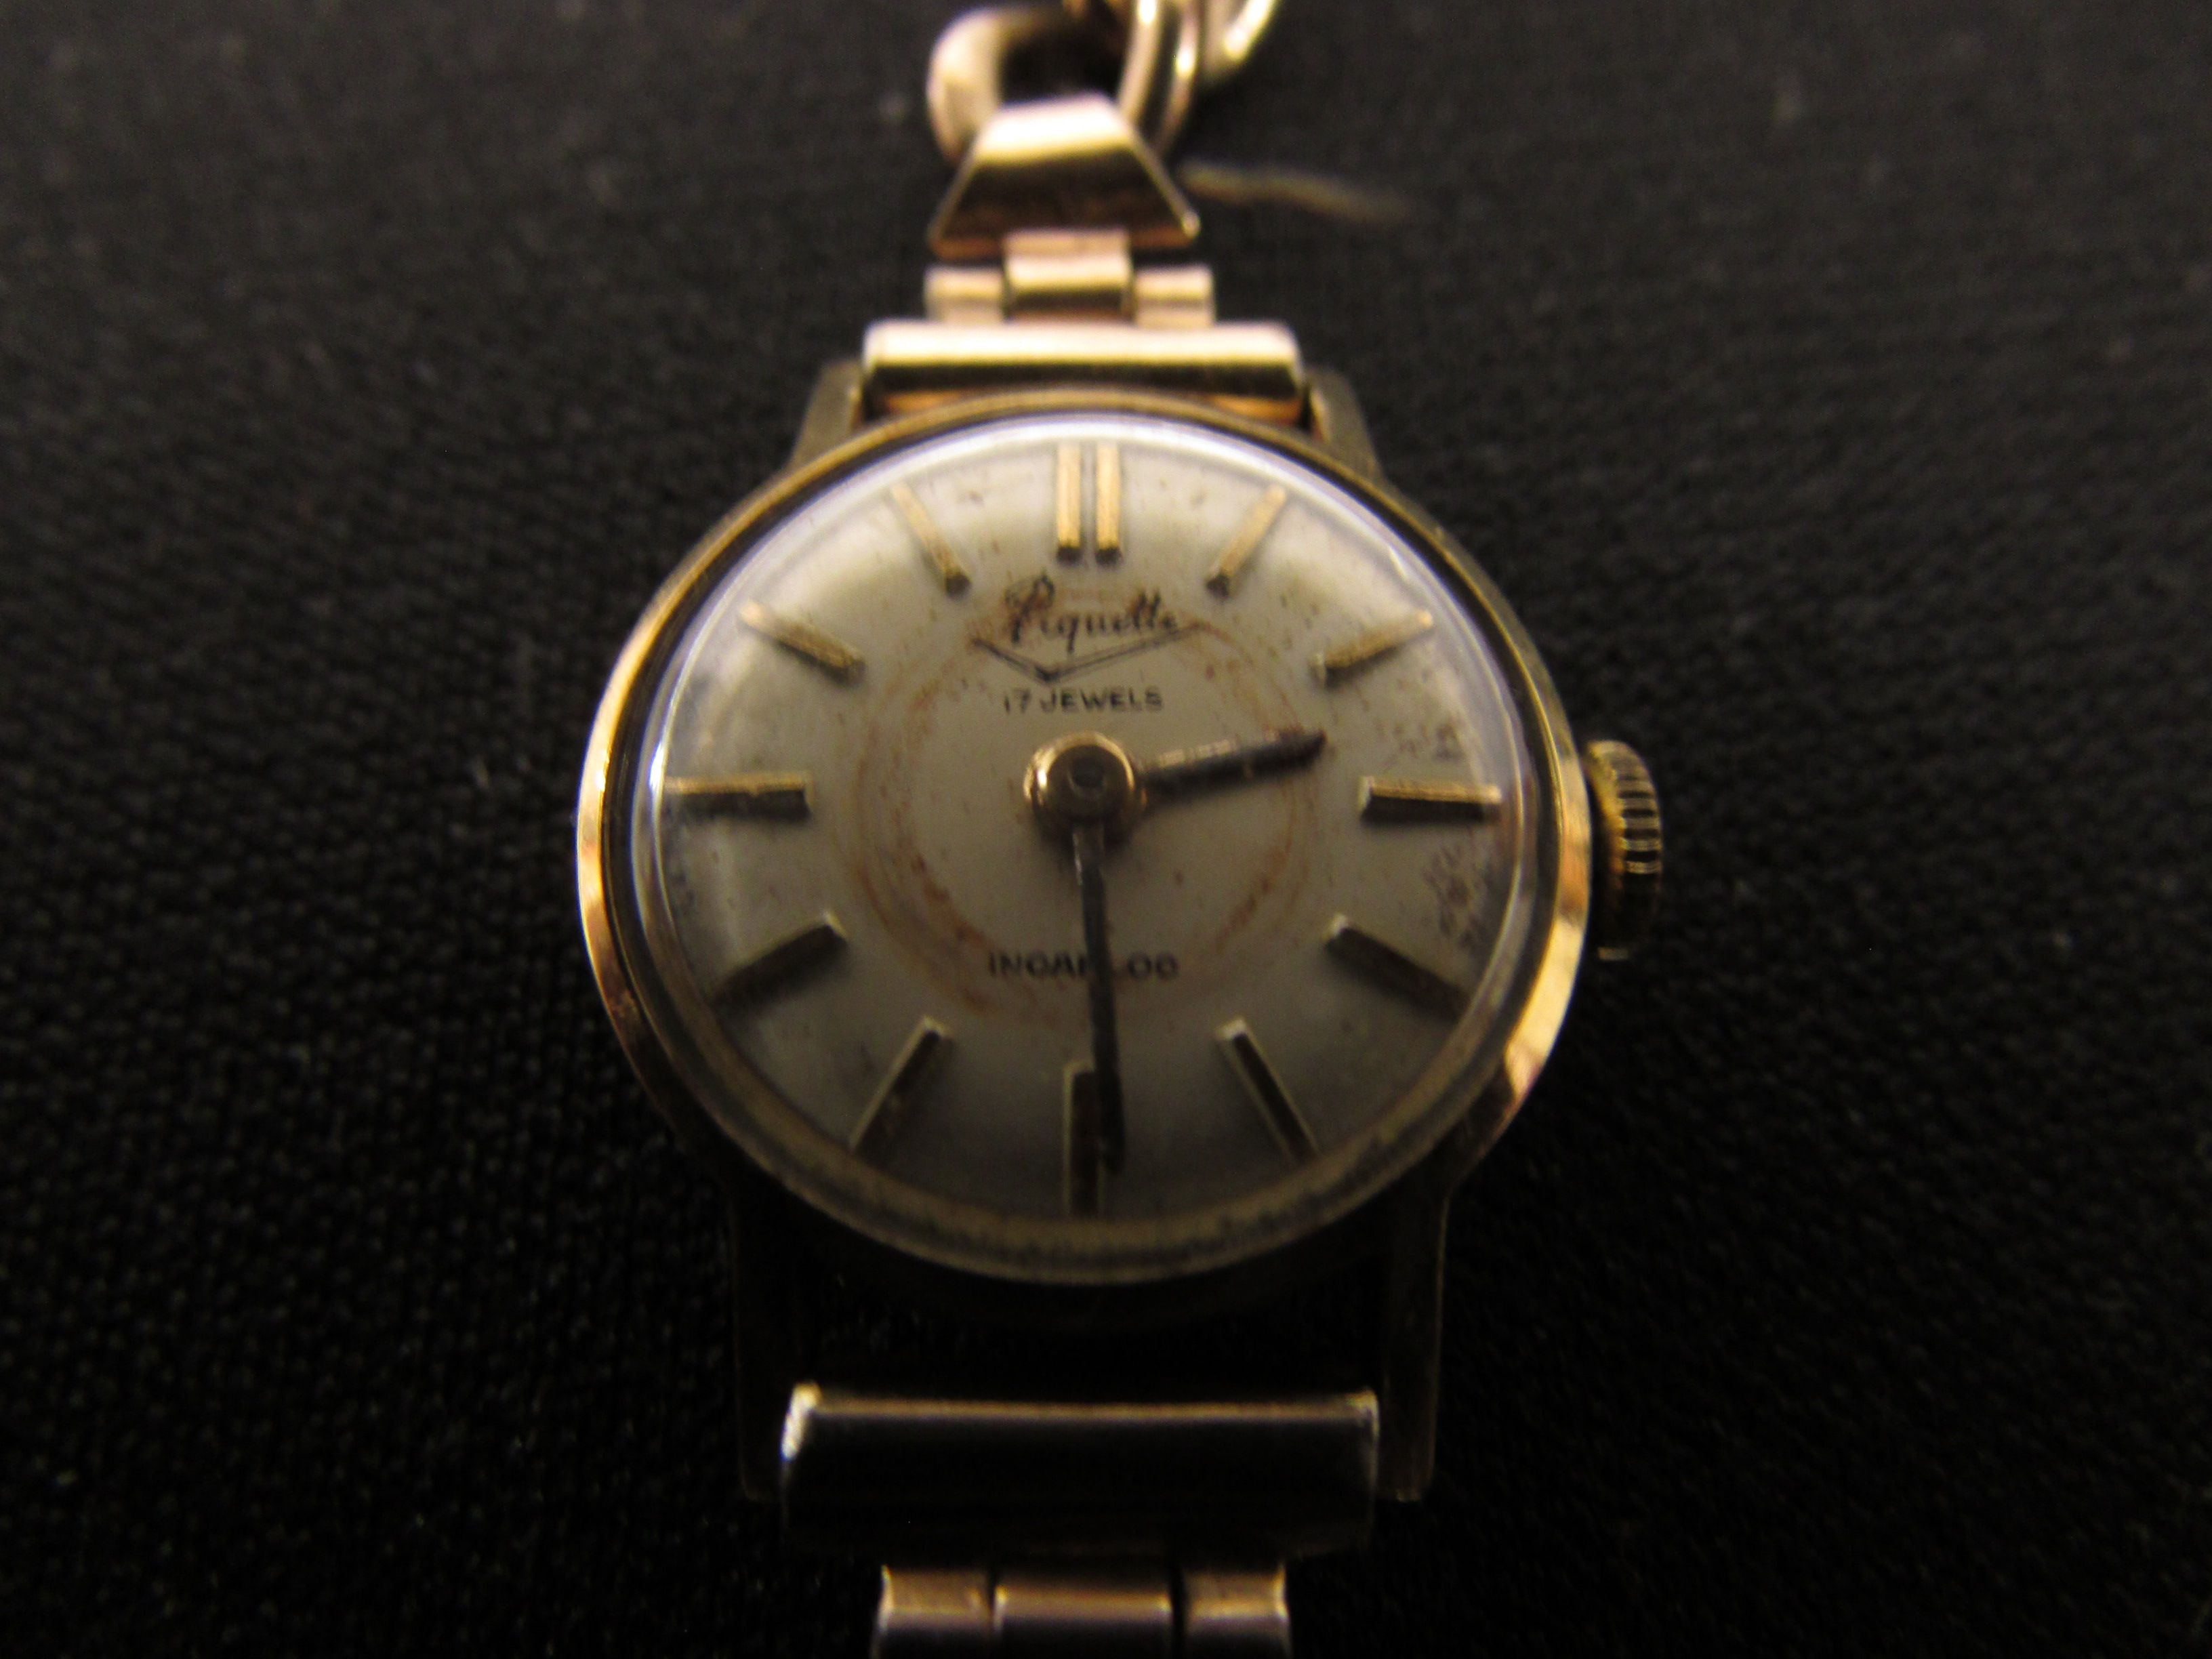 Lot 124 - Ladies Piquette cocktail wristwatch with incabloc movement and baton numerals in a 14KT gold